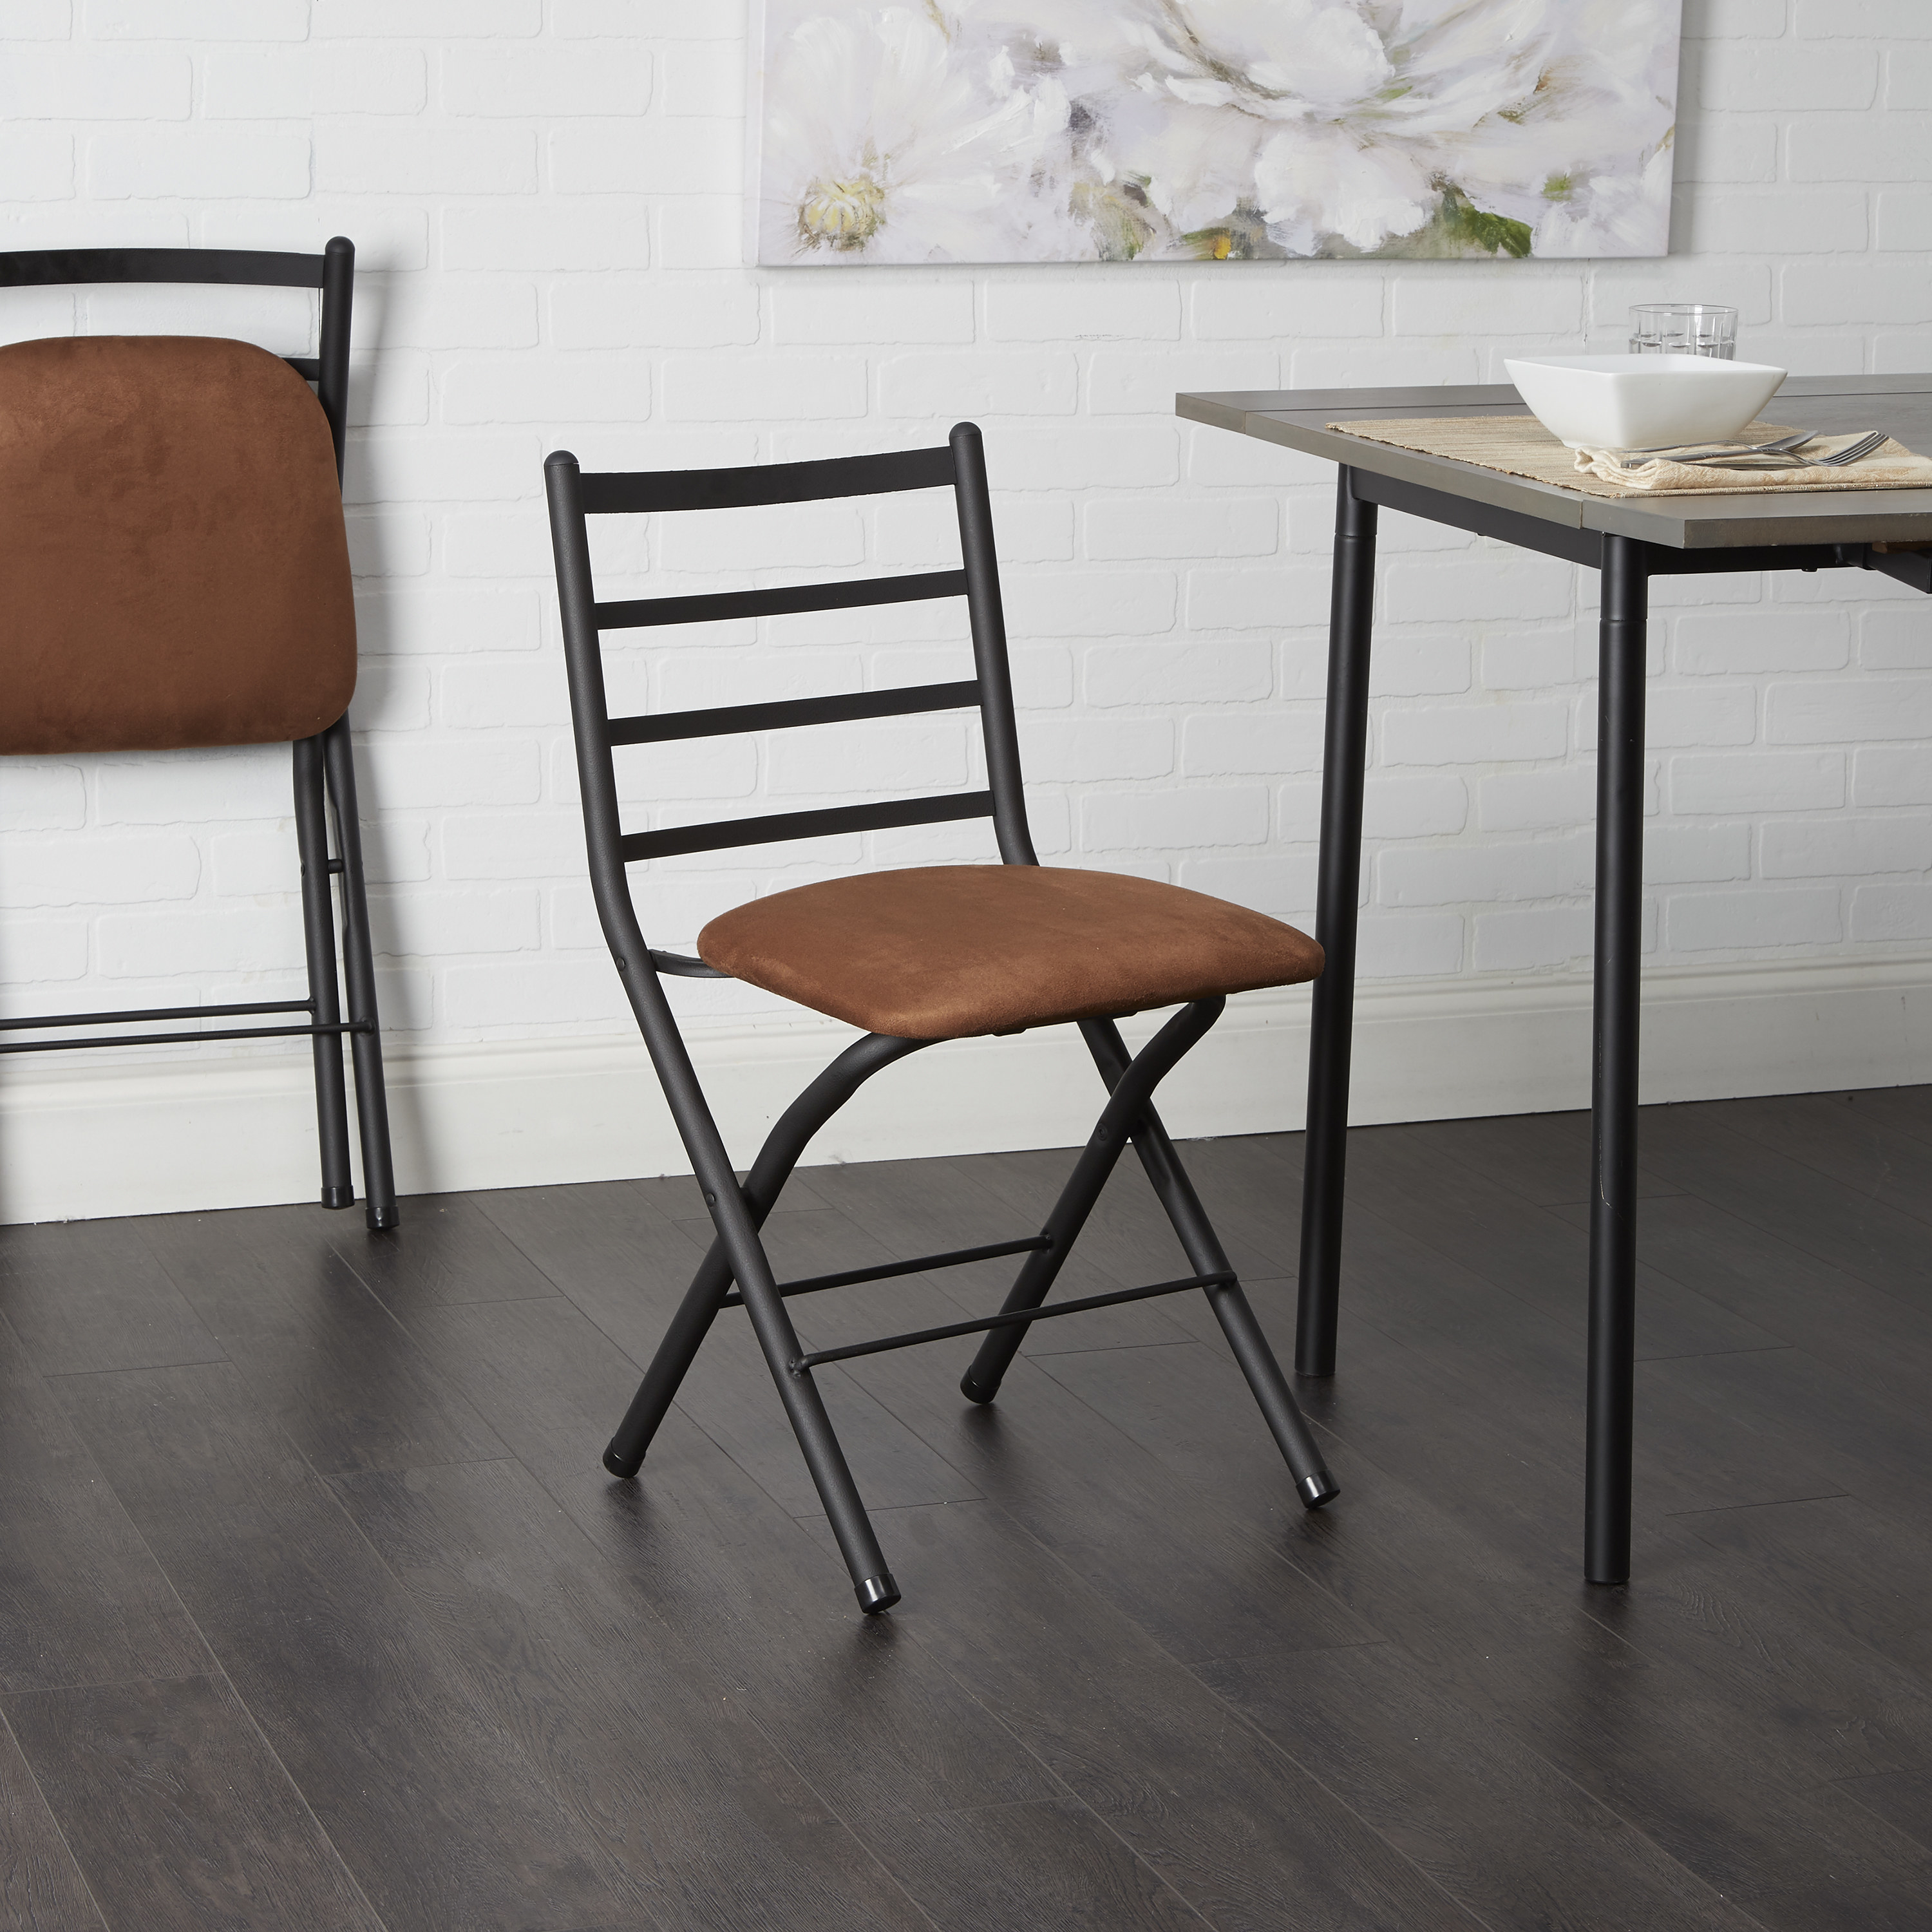 The chair, with black tube body and brown microfiber padded seat